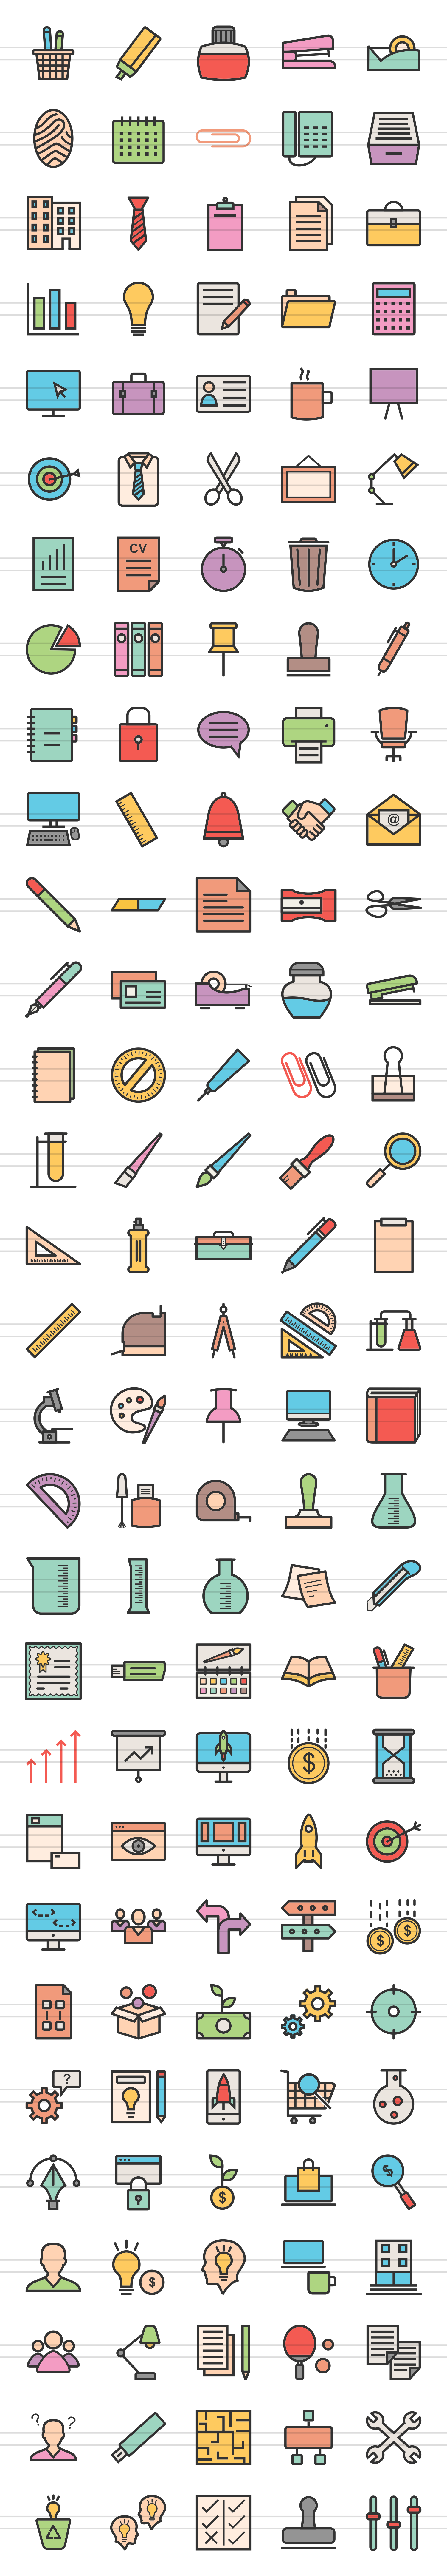 150 Office & Stationery Filled Line Icons example image 3